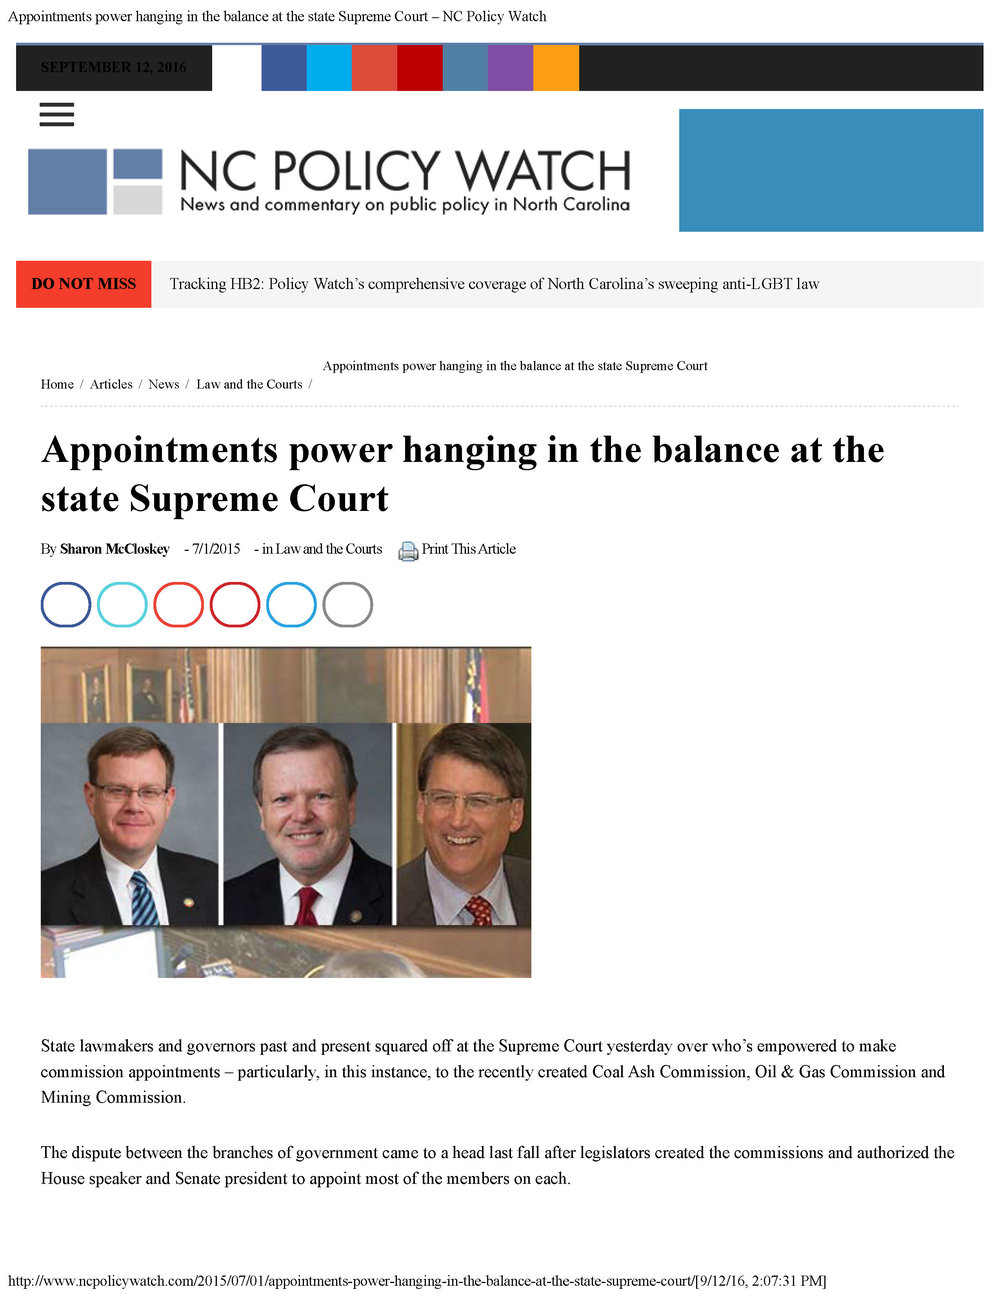 Sharon McCloskey - Appointments power hanging in the balance at the state Supreme Court – NC Policy Watch_Page_1.jpg